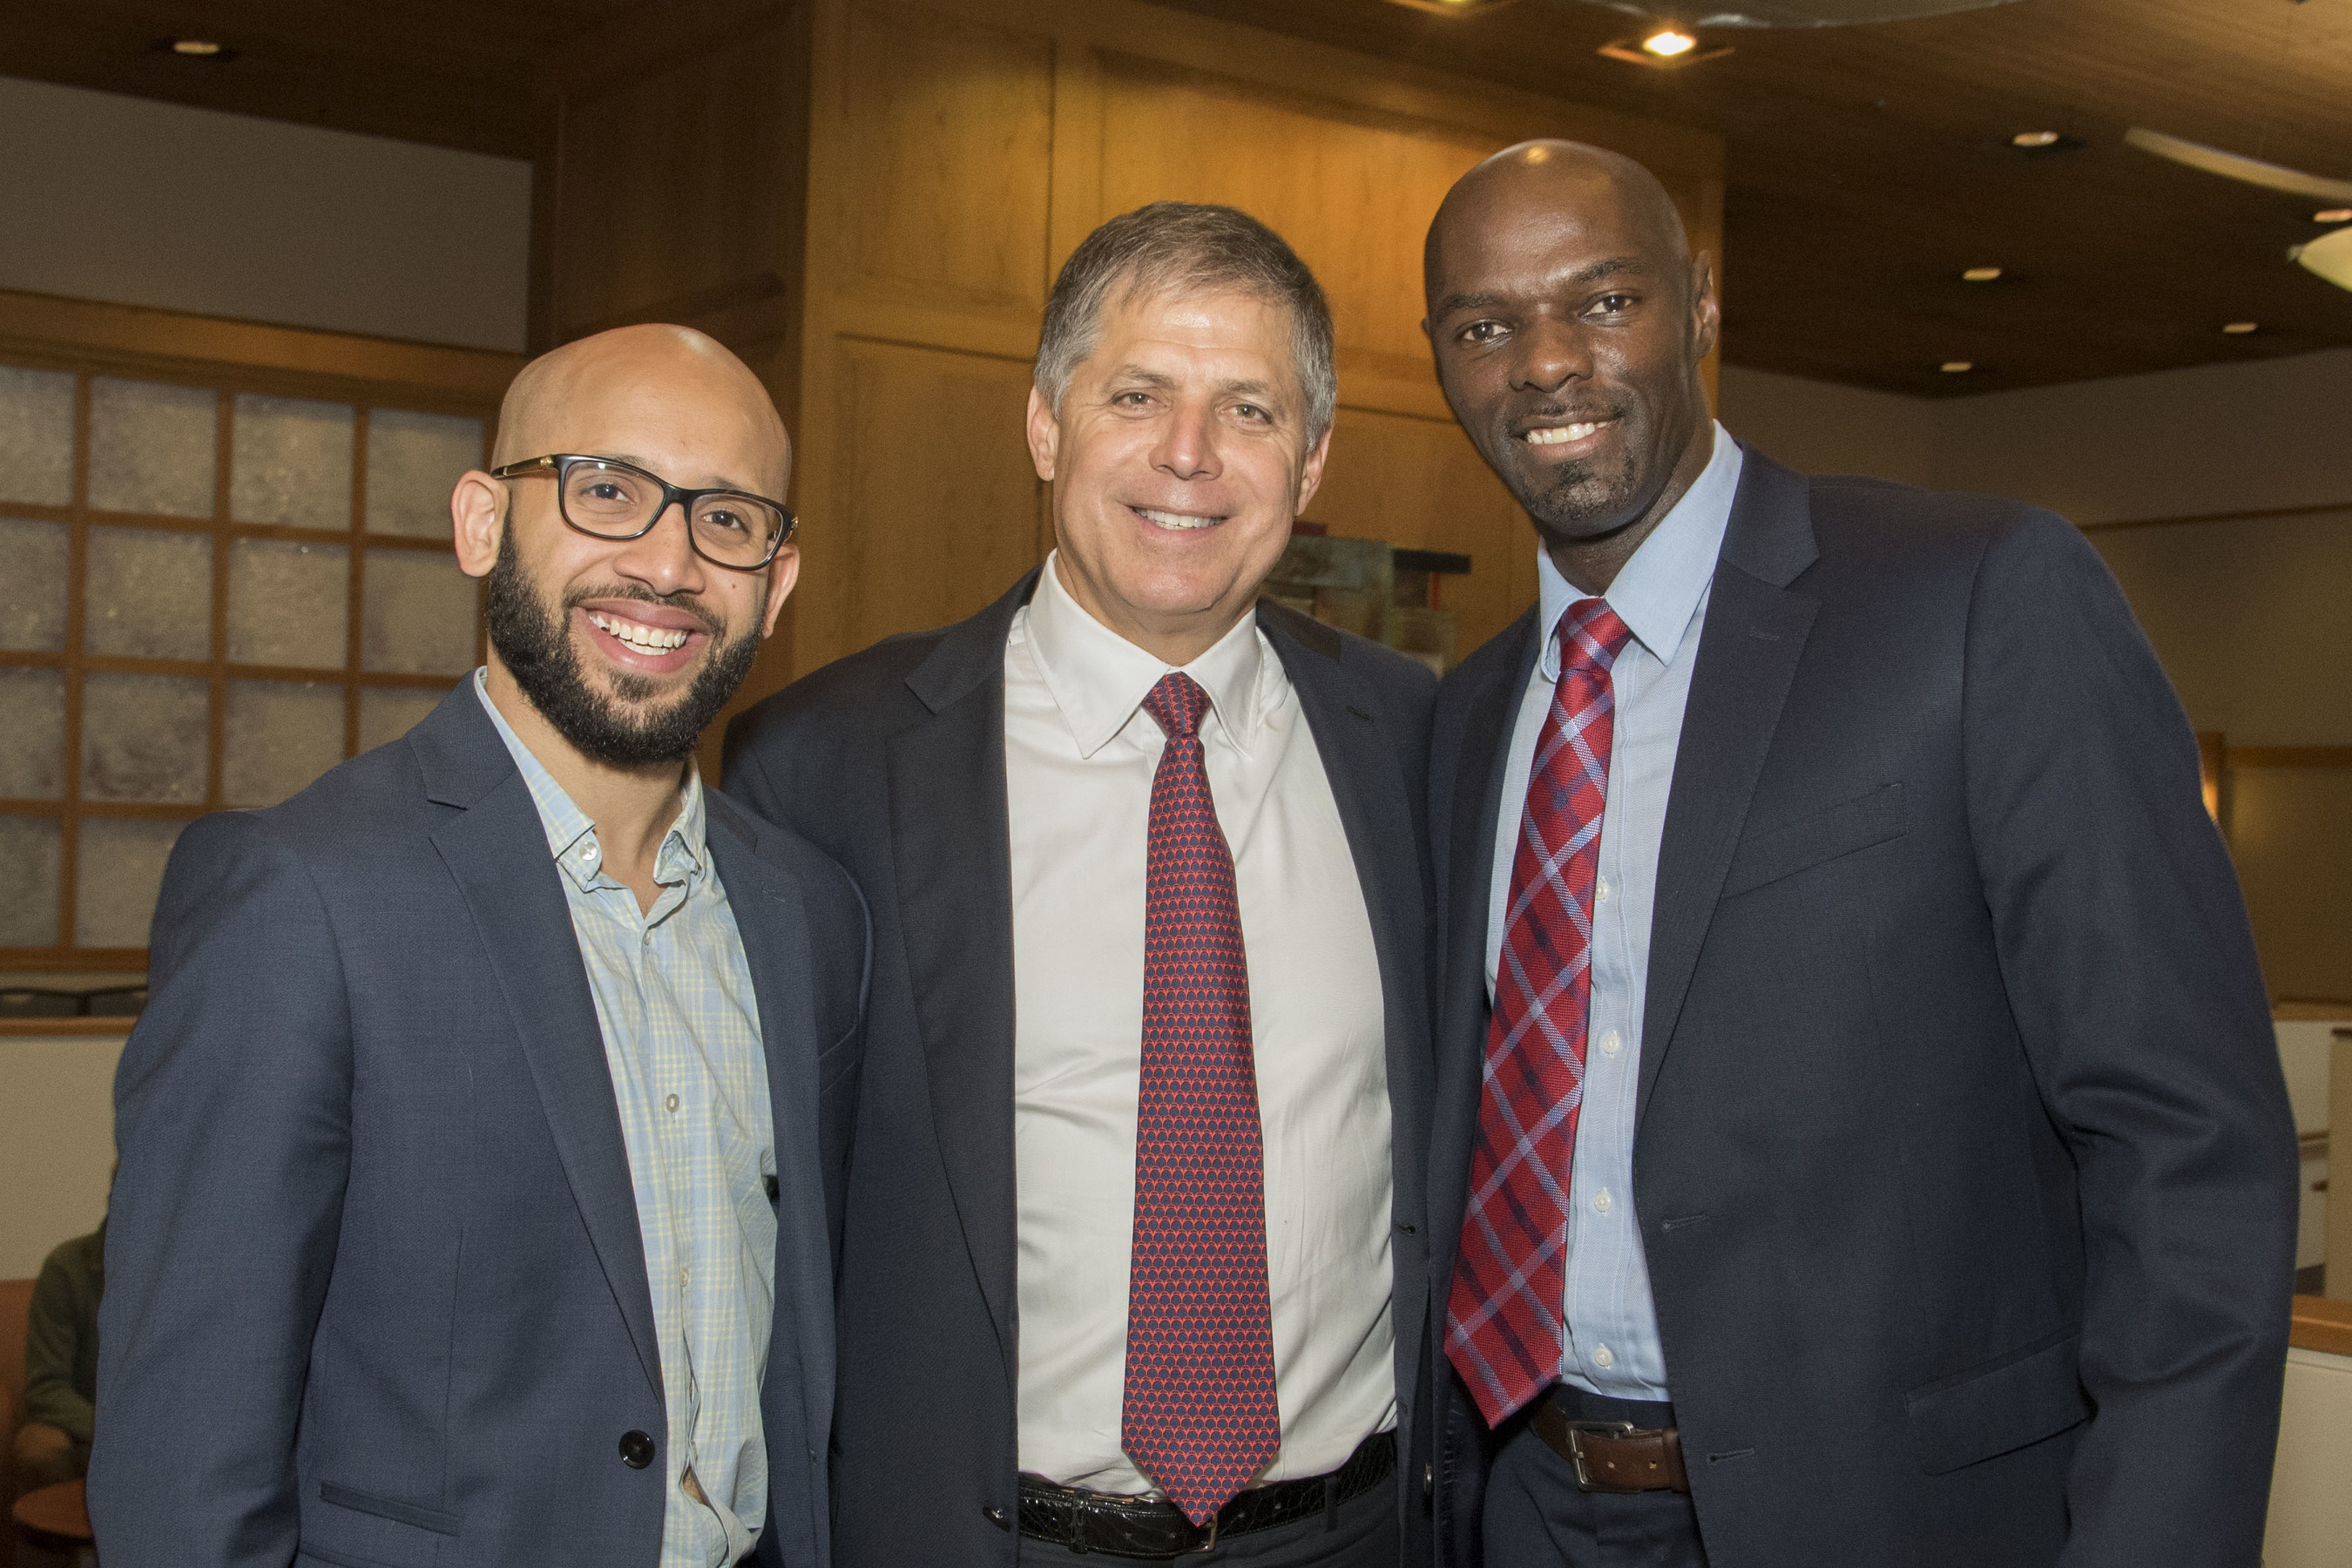 Guest speaker EJ Carrion stands with Rob Siegfried and Anthuan Maybank, co-founders of Siegfried Maybank Leadership Program(TM)